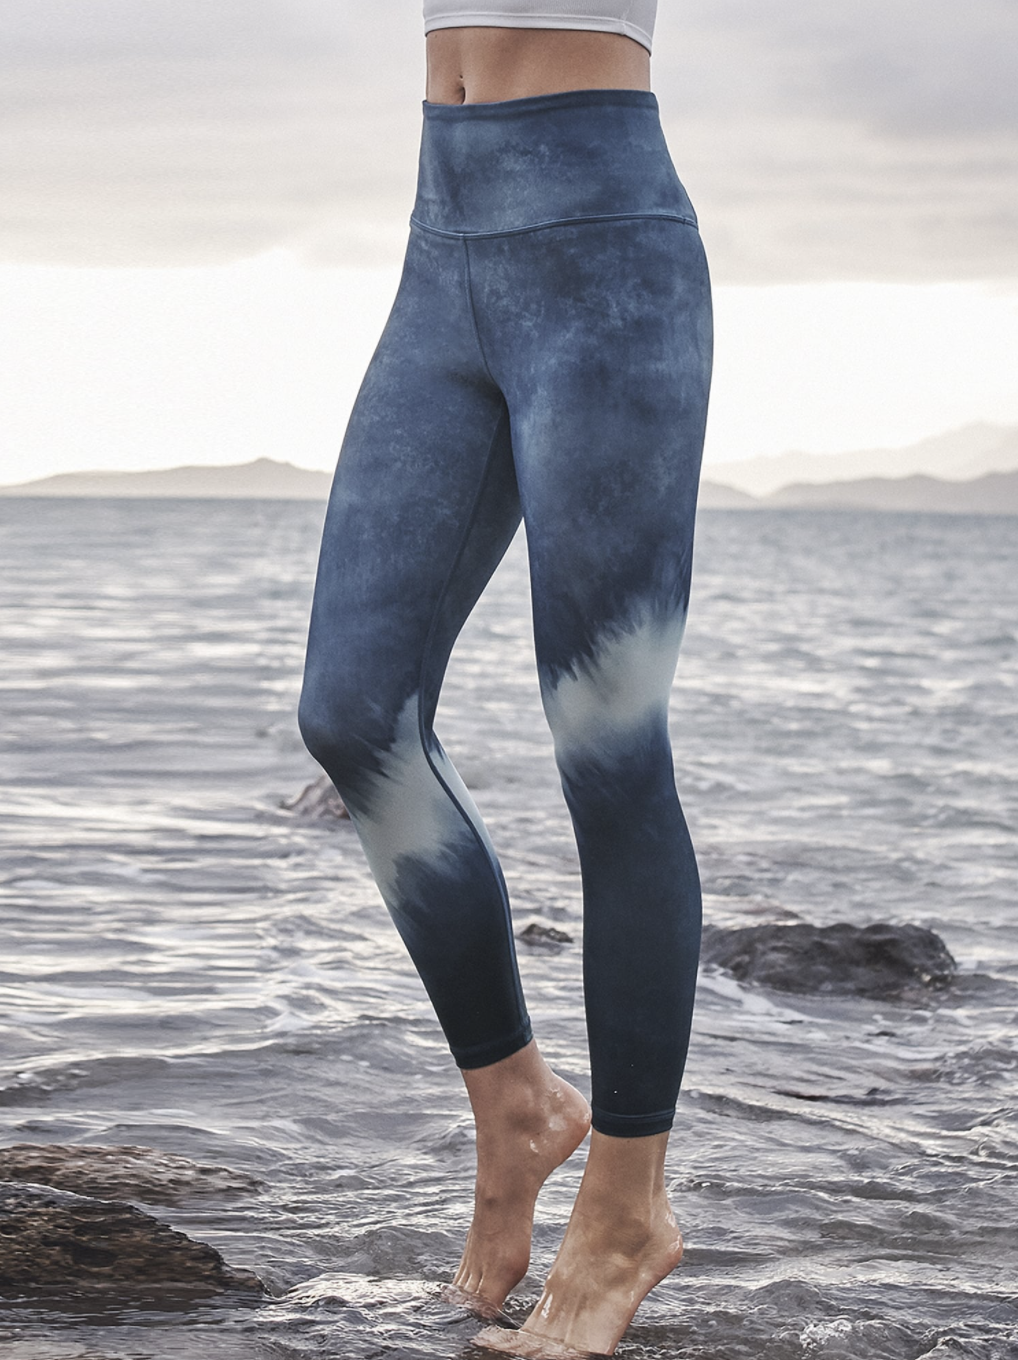 A model wearing the leggings, which come down to the ankles